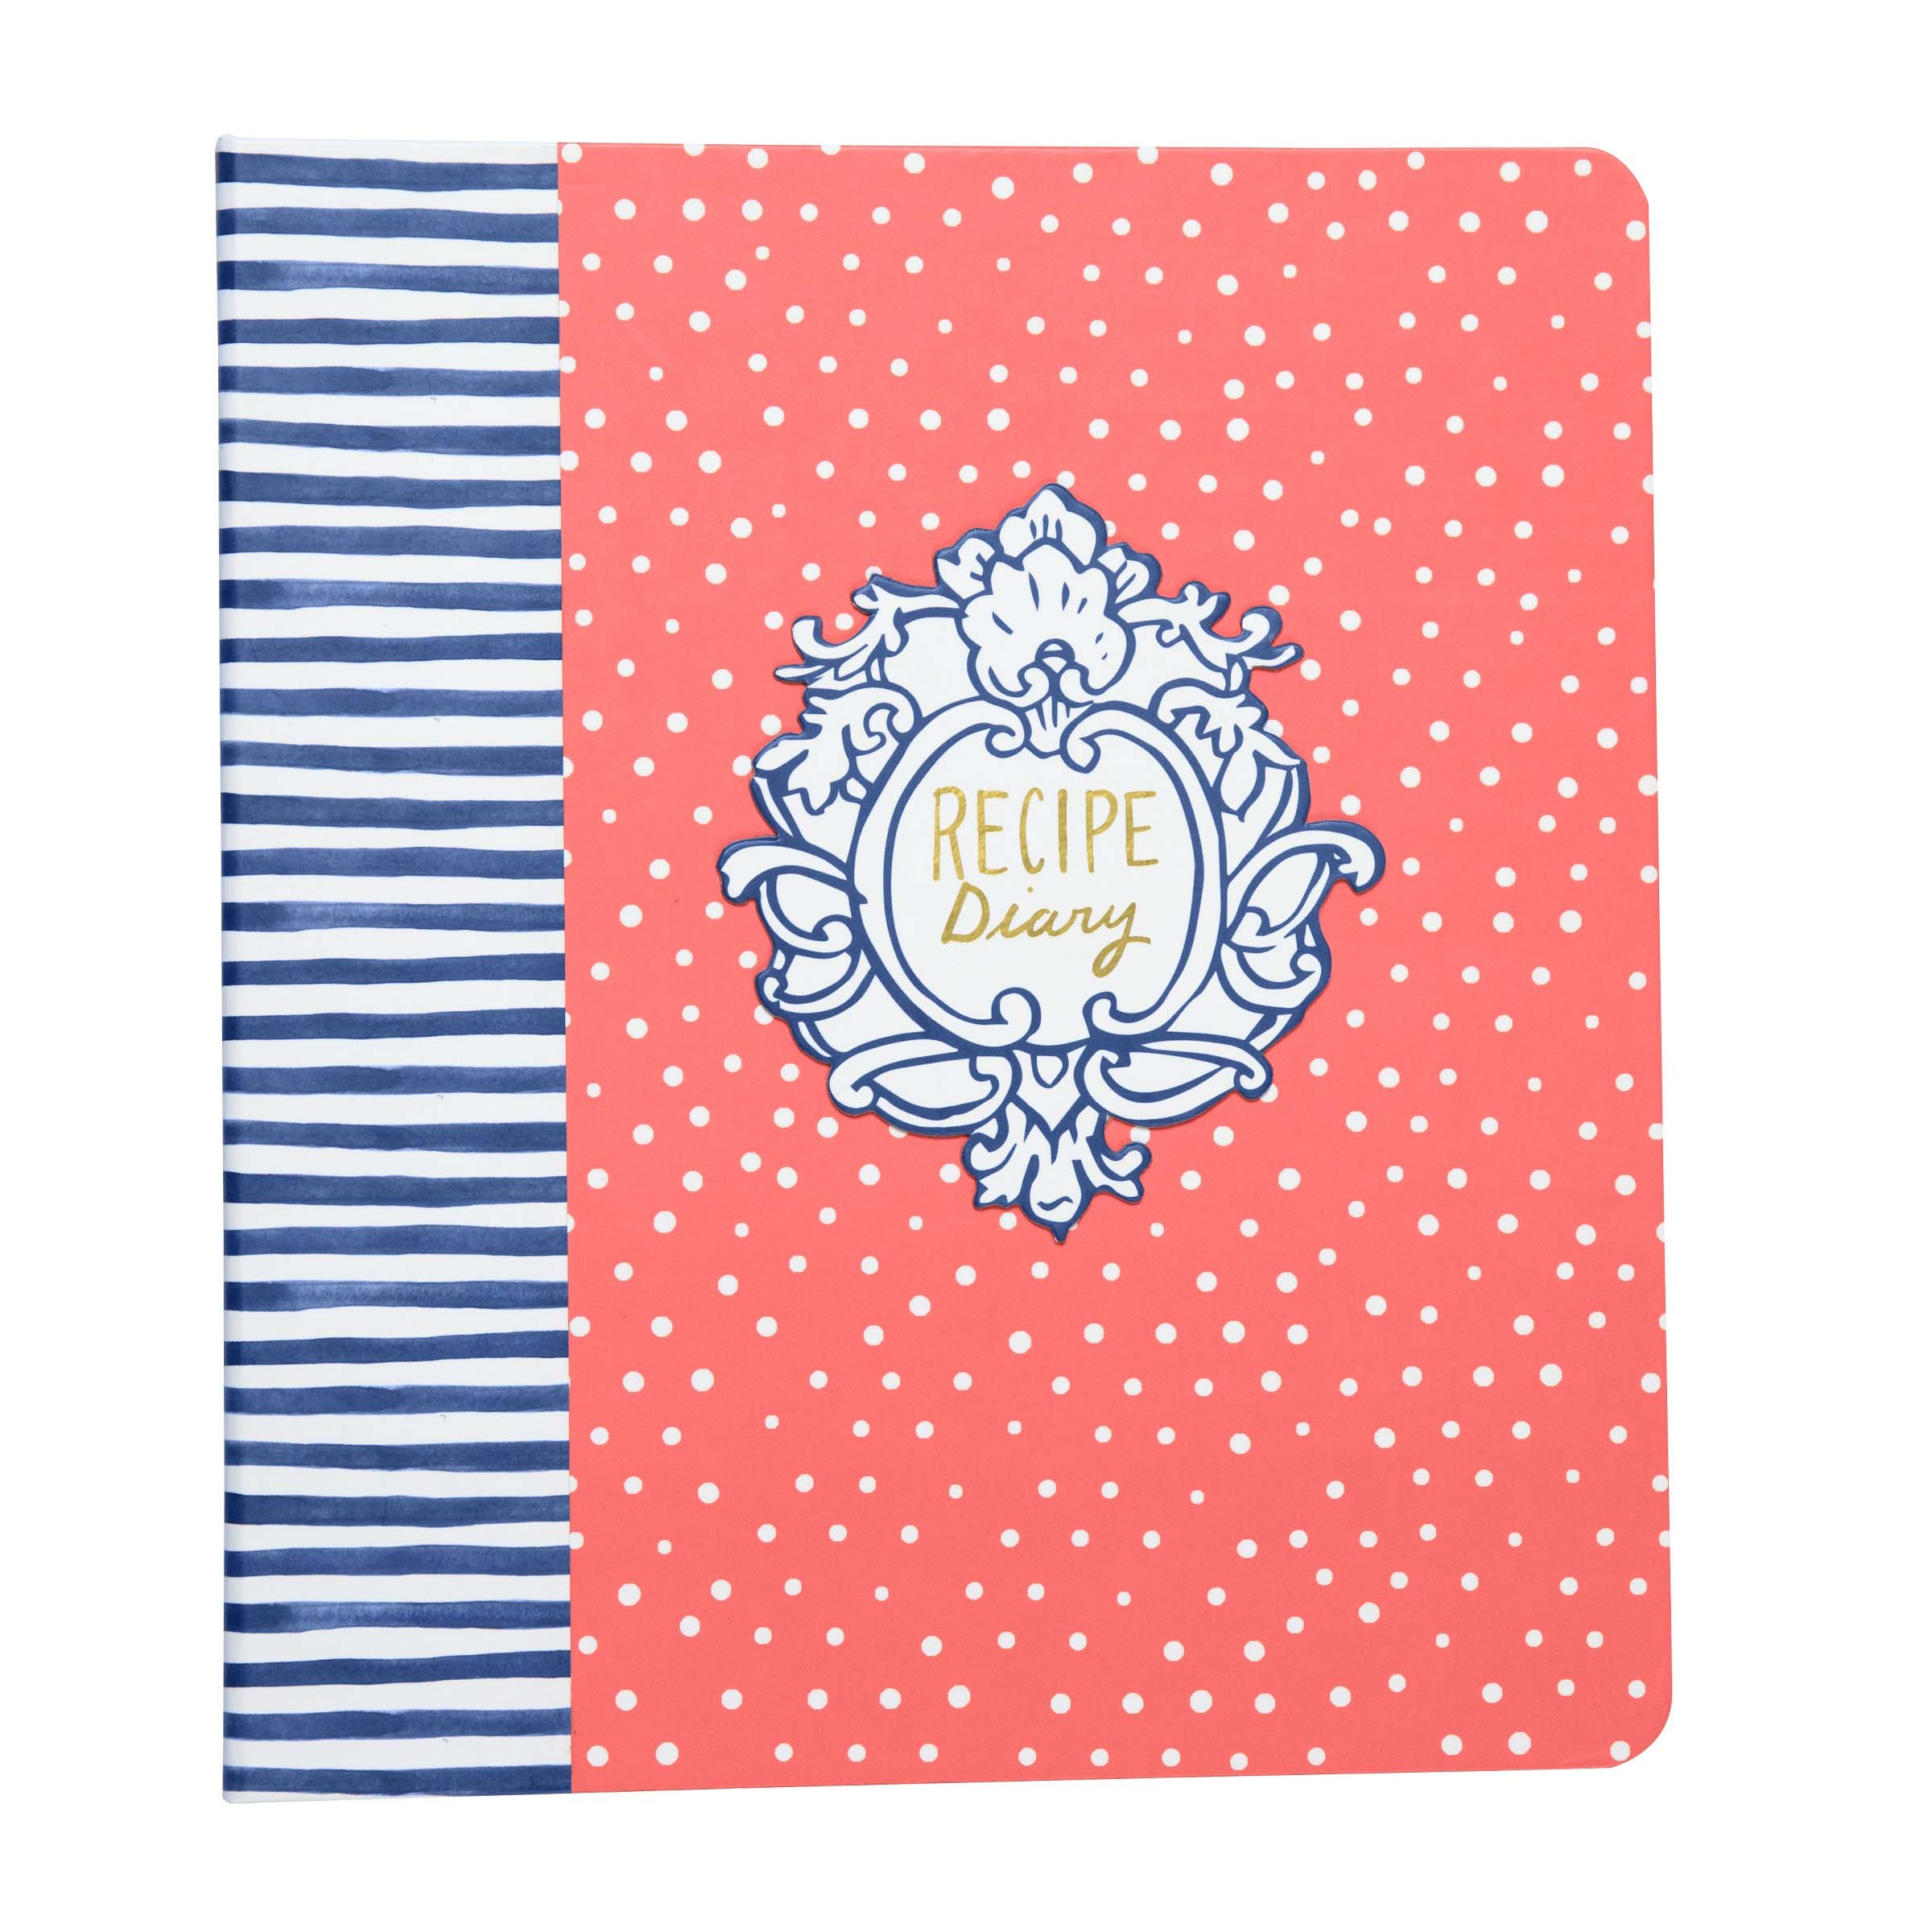 C.R. Gibson Keepsake Recipe Diary, By Molly Hatch, Binder With 12 Divider Tabs, 40 Journal & Recipe Pages, Includes 2 Pages Of Stickers, Measures 8.25'' W x 9.5'' H x 1.75'' D - Flourish